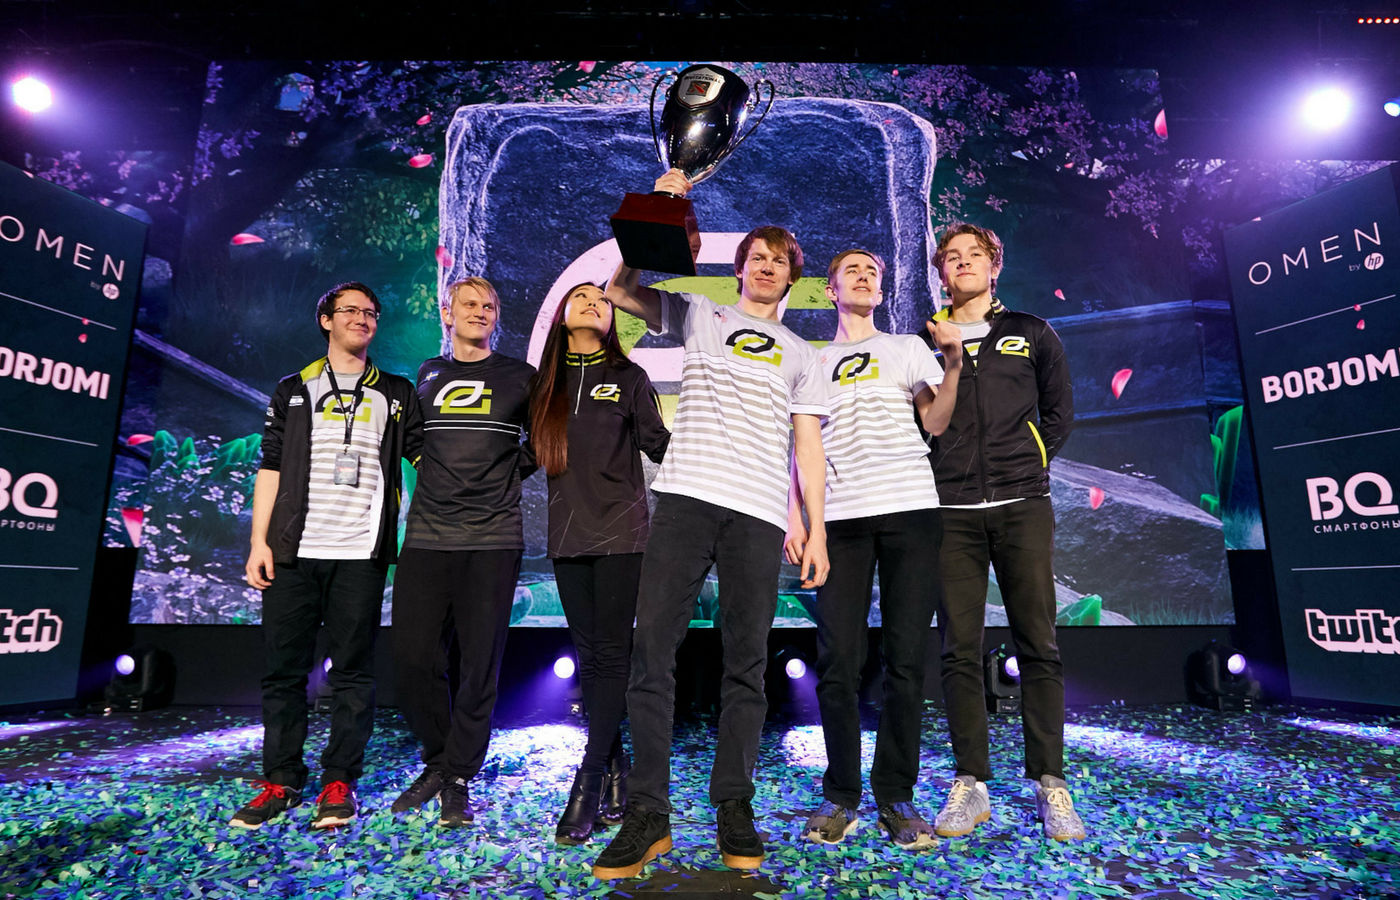 OpTic Gaming | One of the most known e-sports organizations